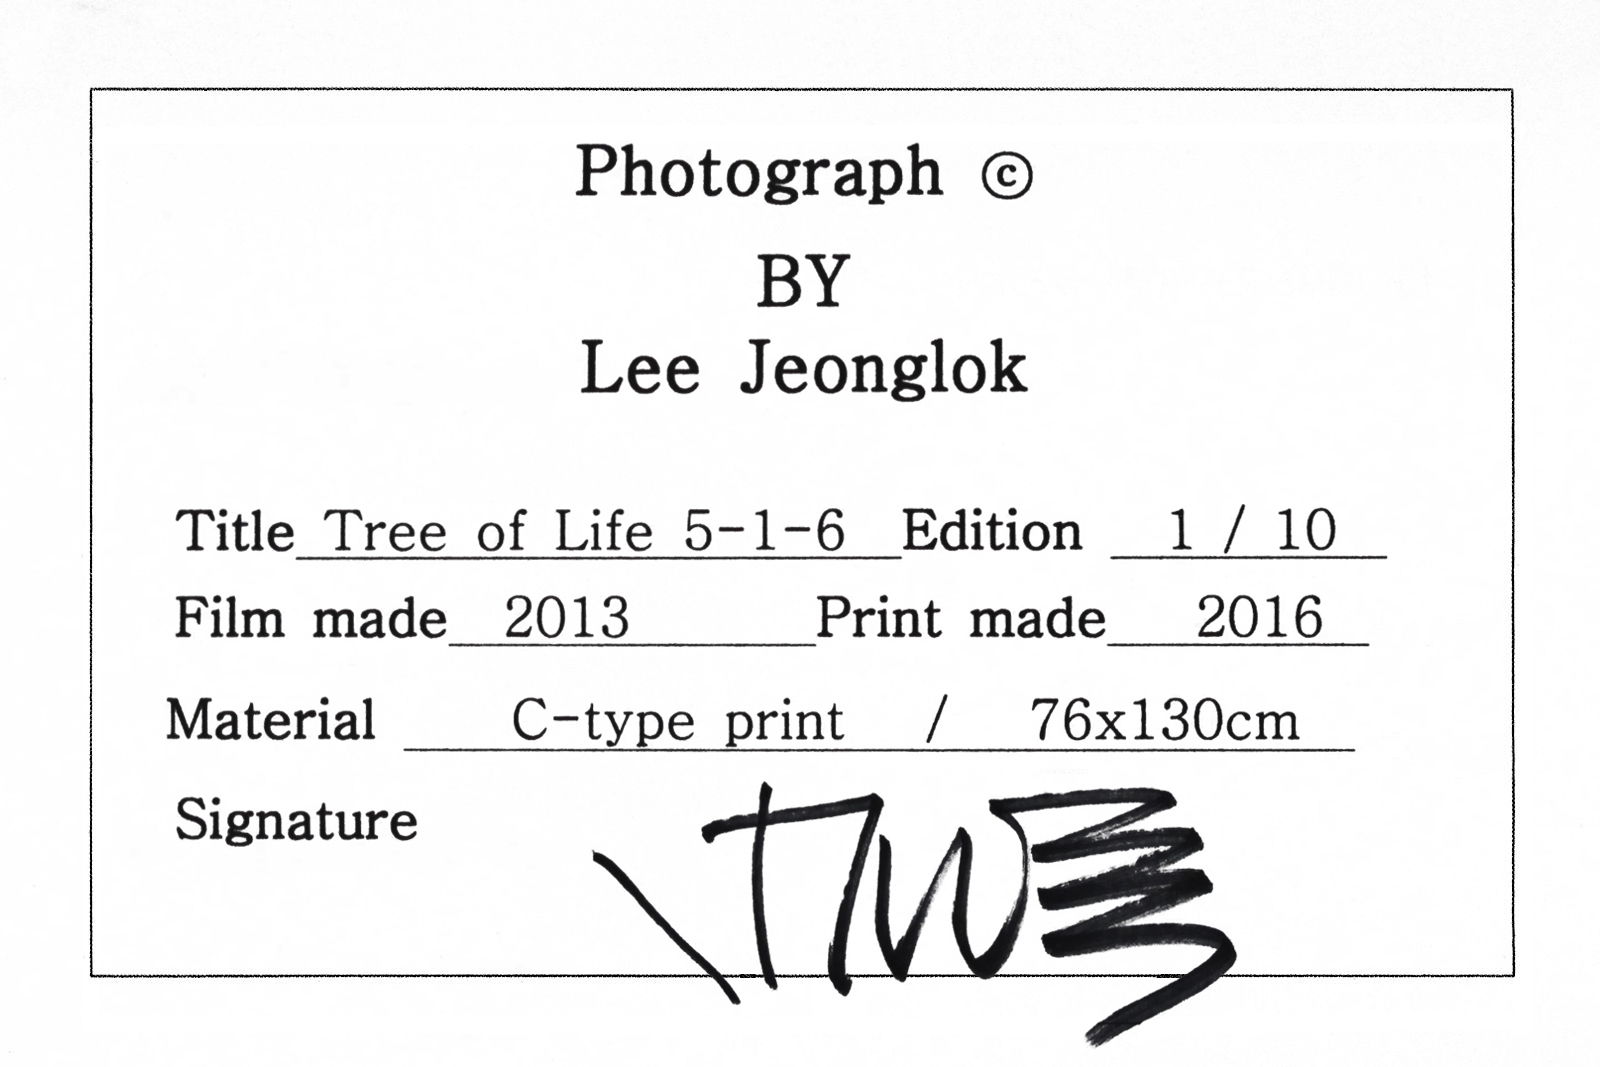 Tree of Life 5-1-6 - Lee Jeonglok